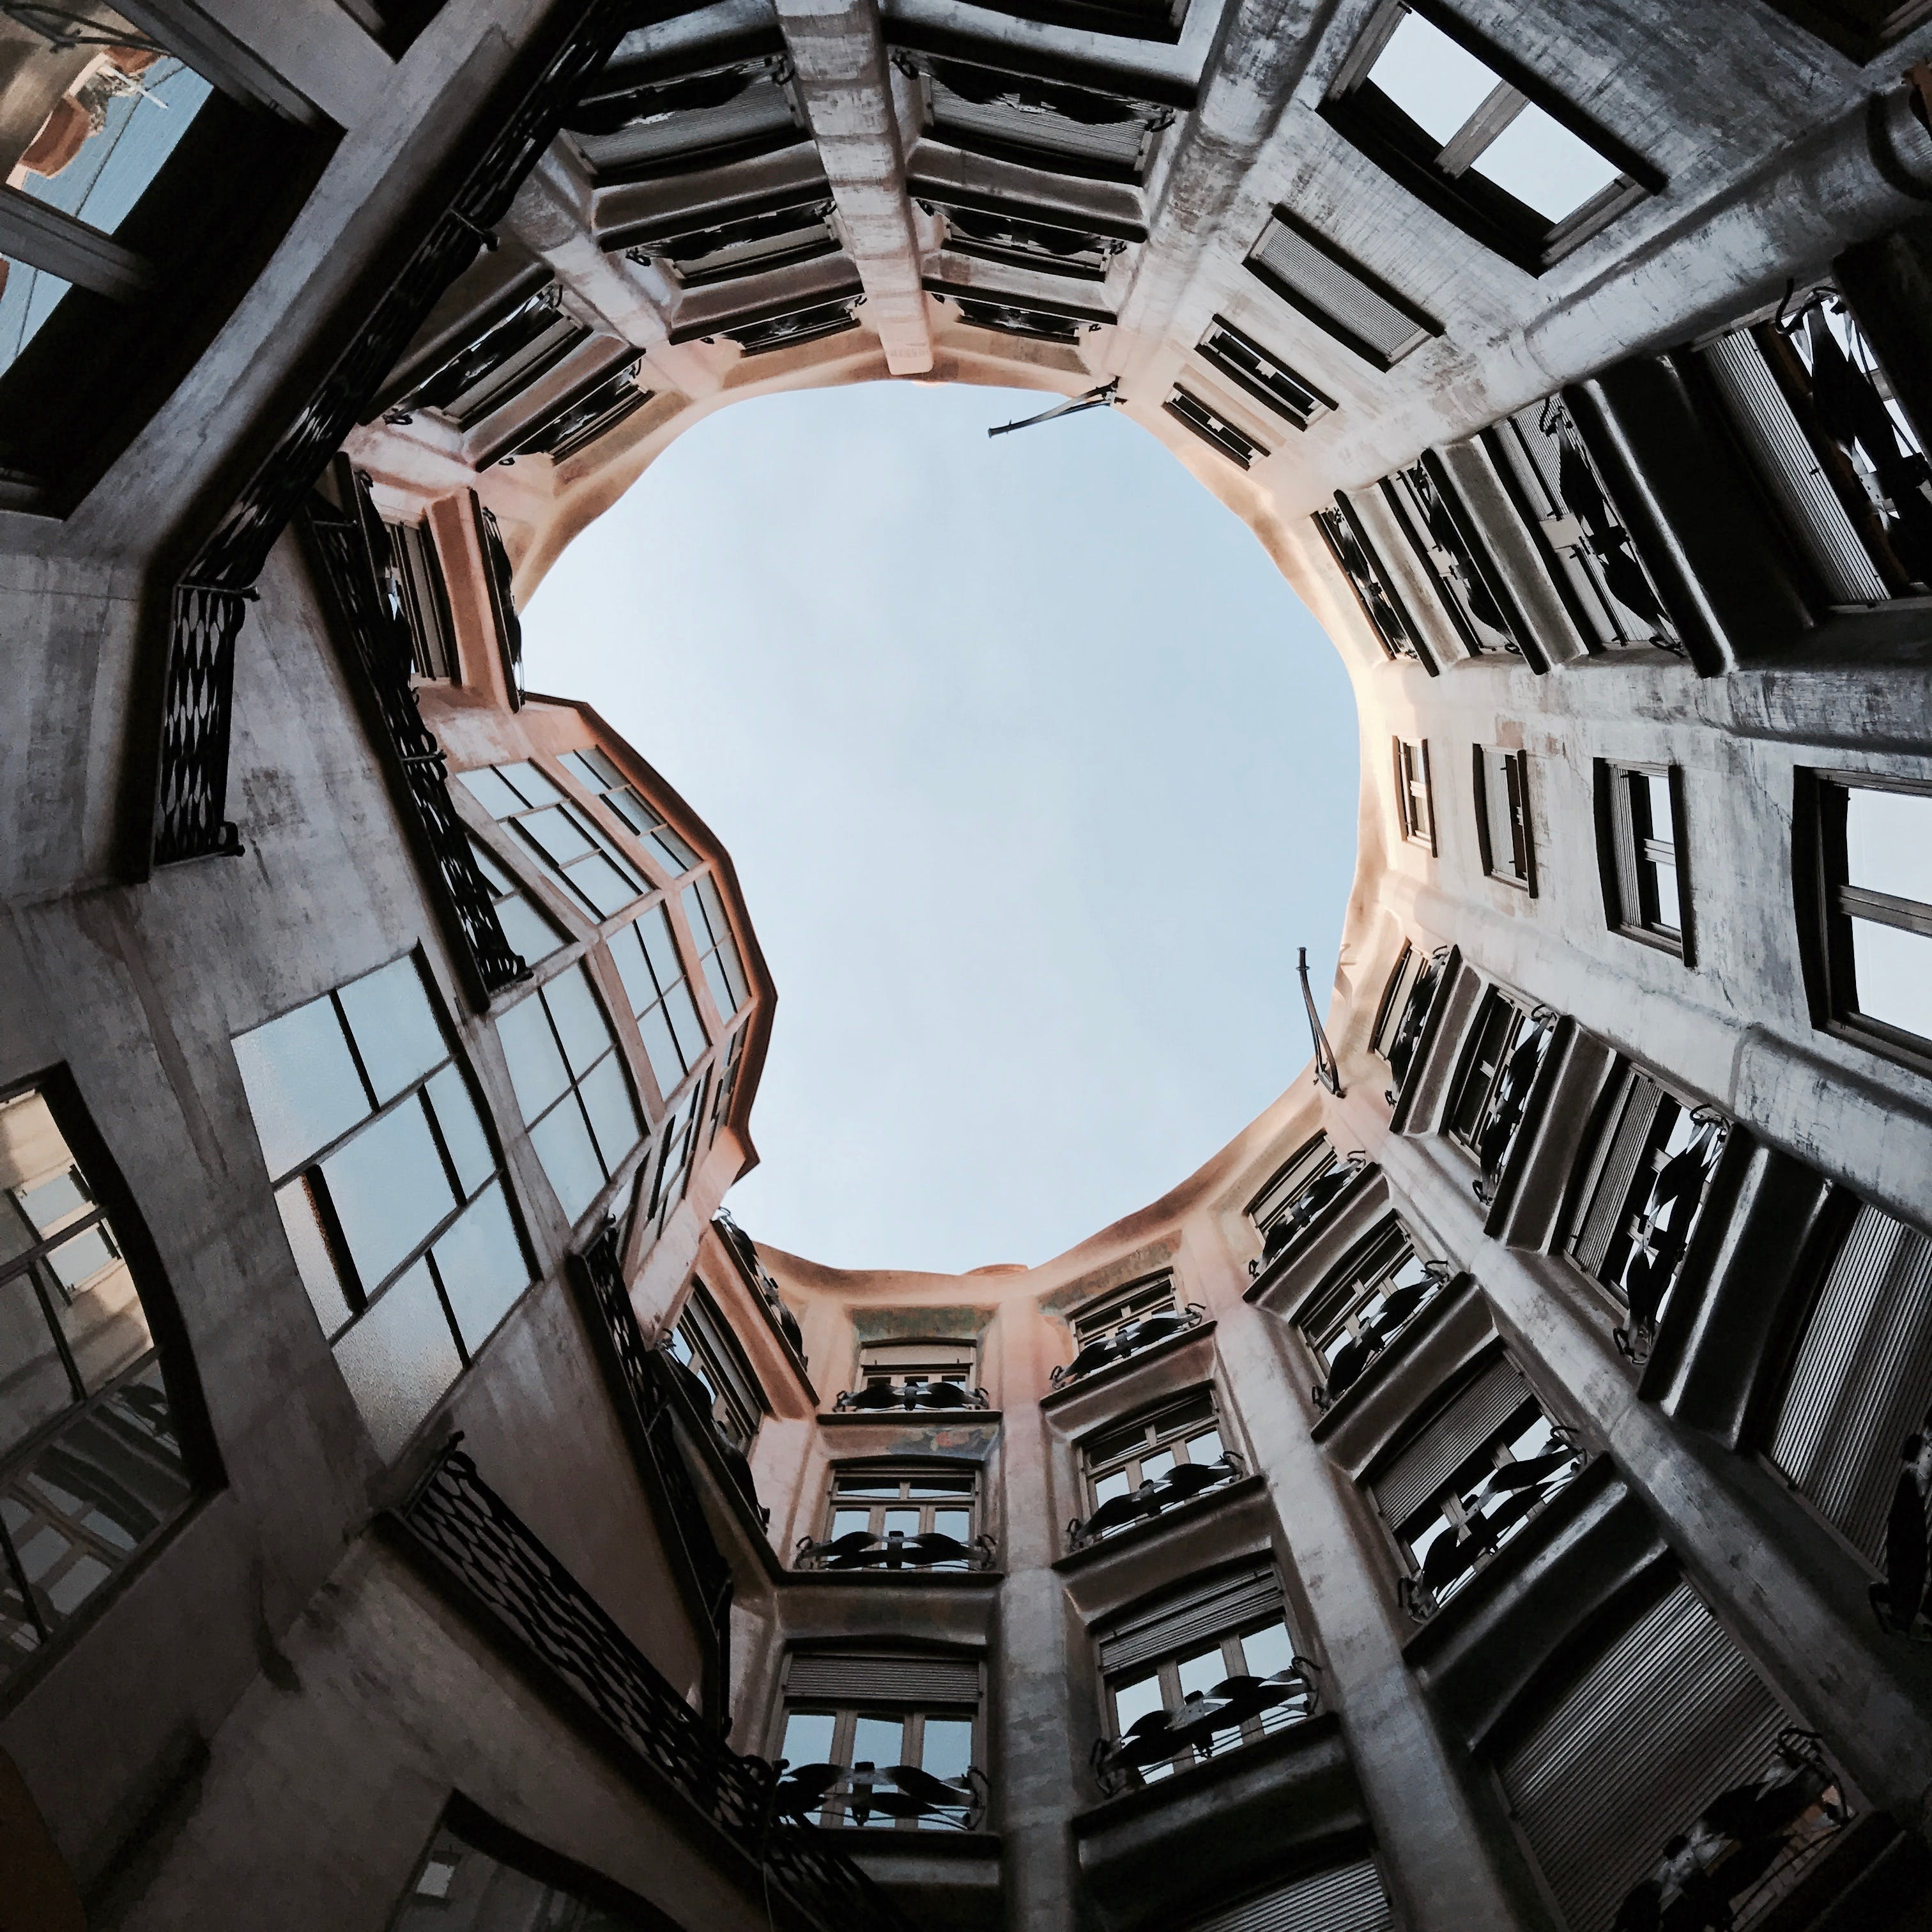 Low Angle Photography of Round Building